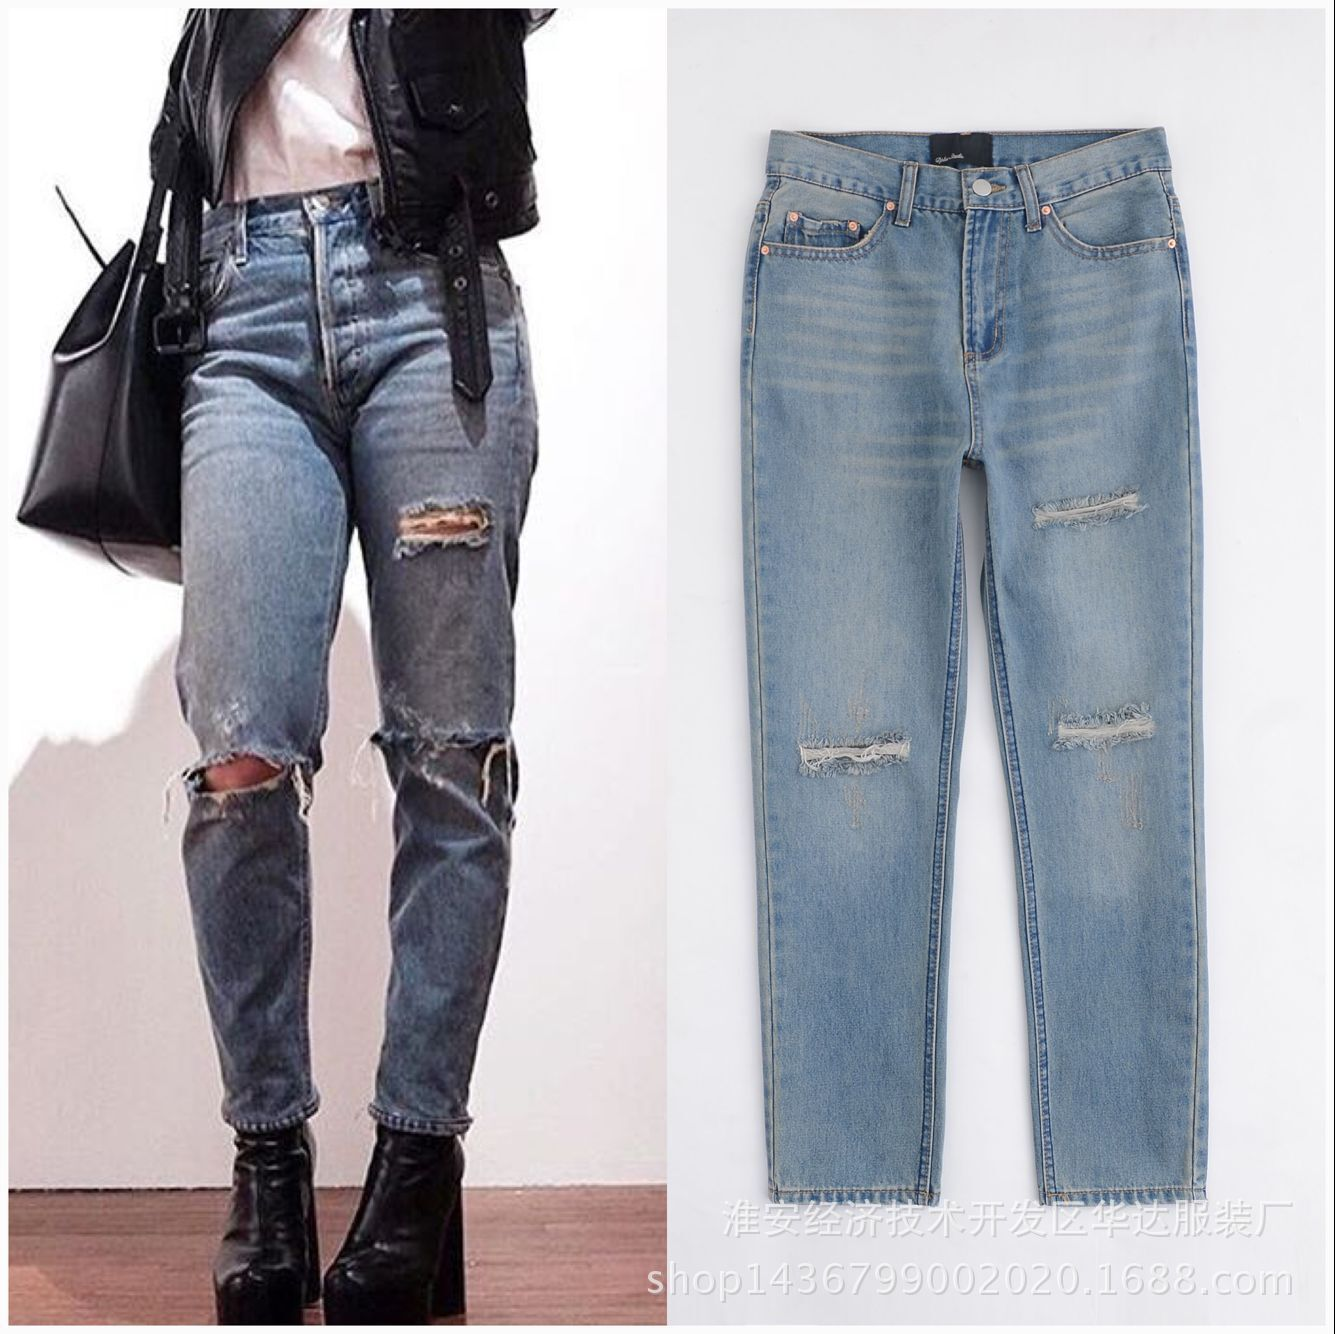 Autumn New Style European And American Style Fashion High-waisted Loose-Fit Washed With Holes Jeans Women's Straight-leg Pants S